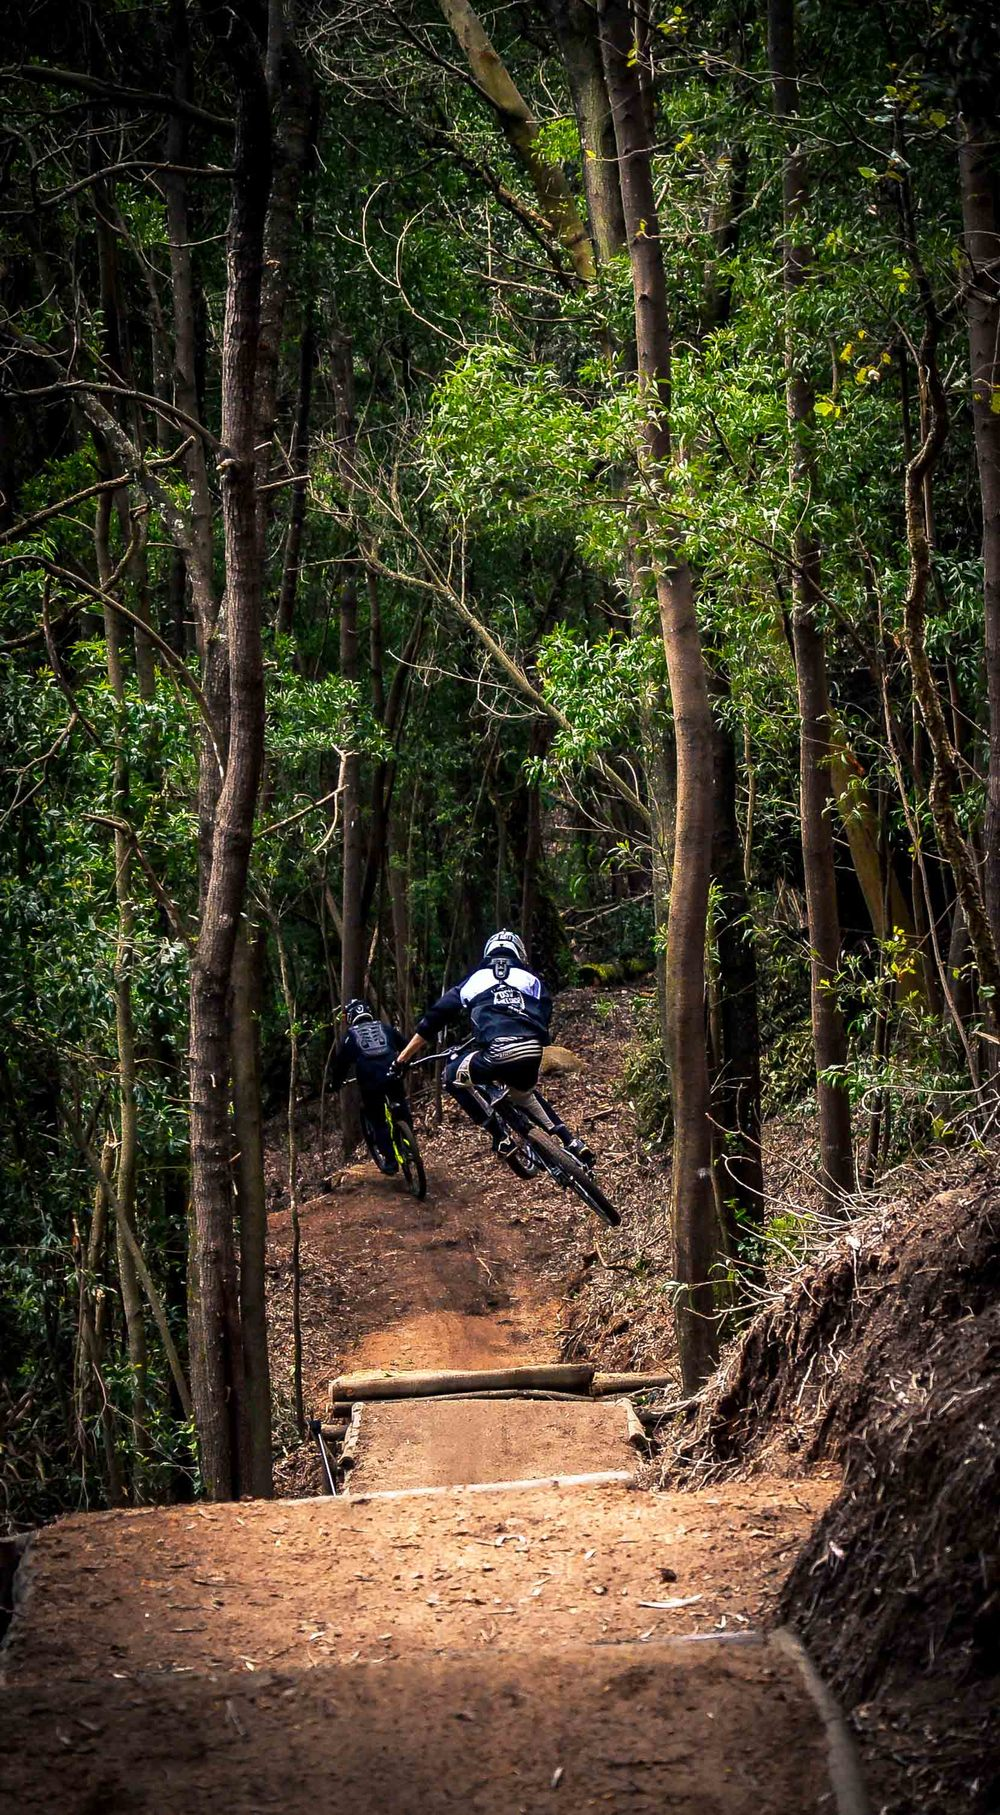 Photo by Rodrigo Silva | rider Diogo Silva